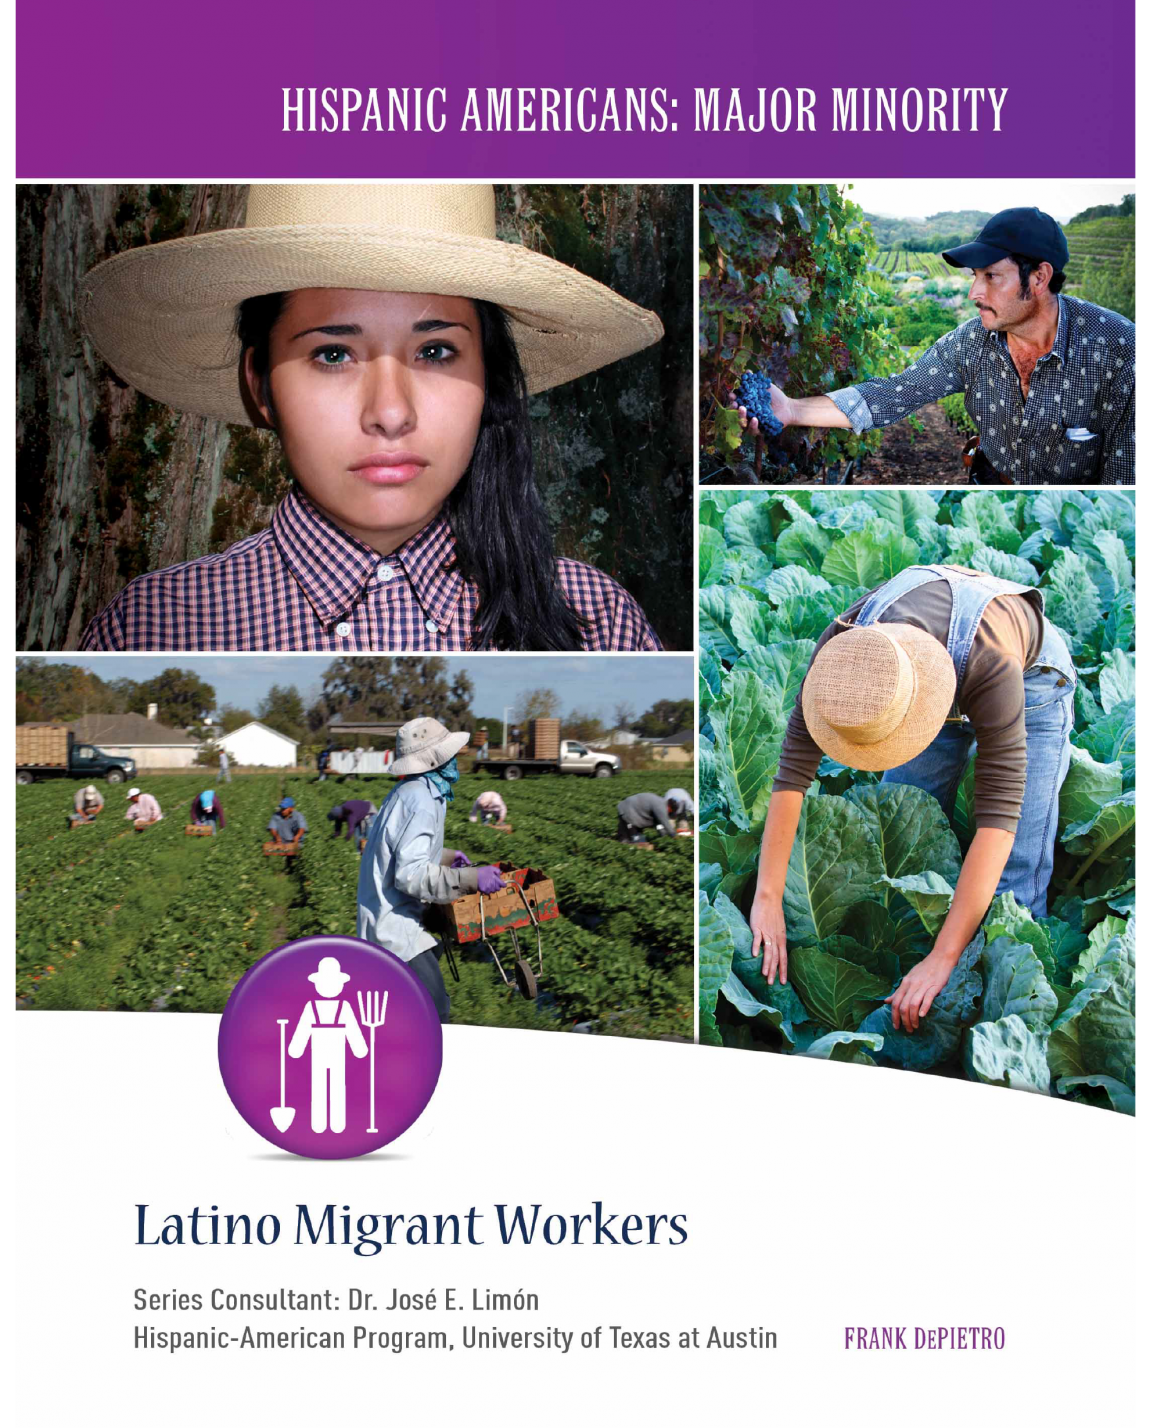 latino-migrant-workers-01.png